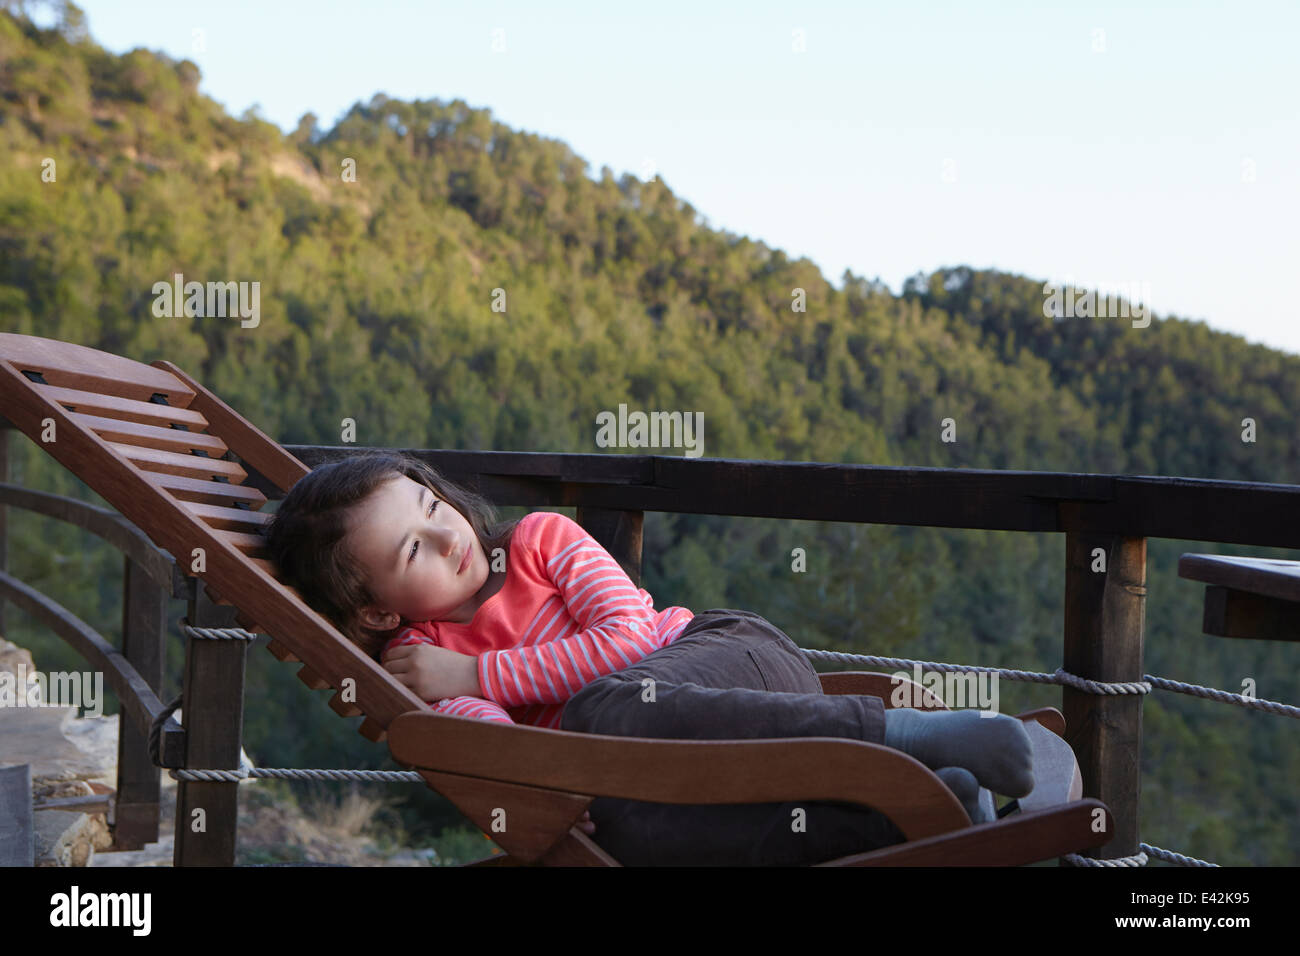 Young girl curled up on balcony deckchair gazing upward Stock Photo